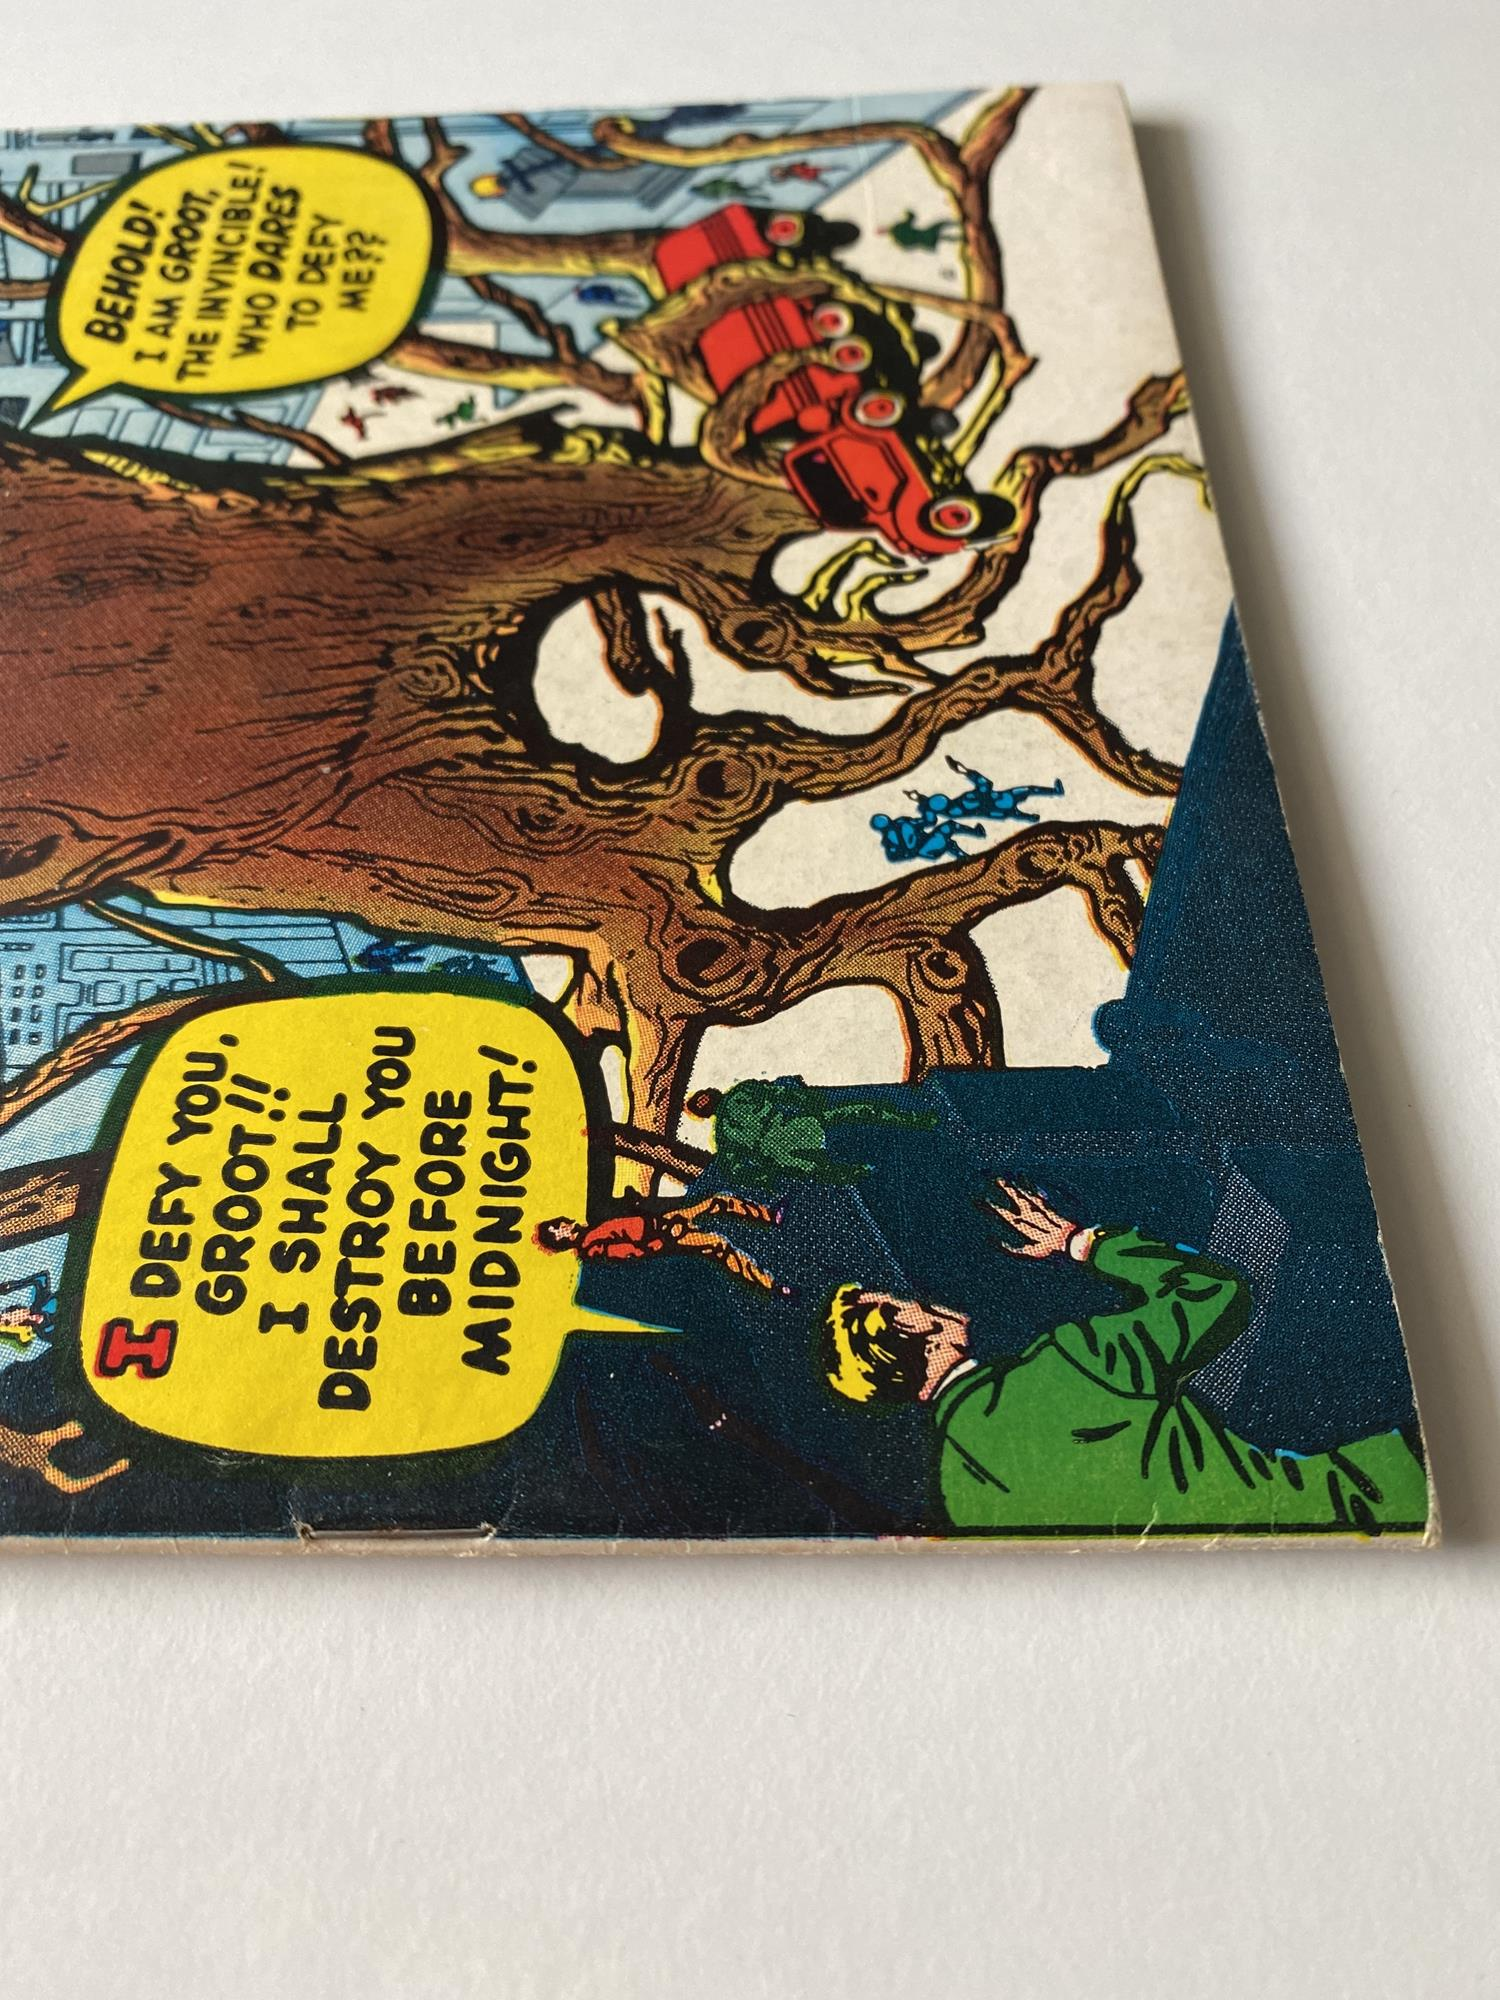 Lot 12 - WHERE MONSTERS DWELL # 6 (GROOT) - (1970 - MARVEL - Pence Copy) - First reprint appearance of